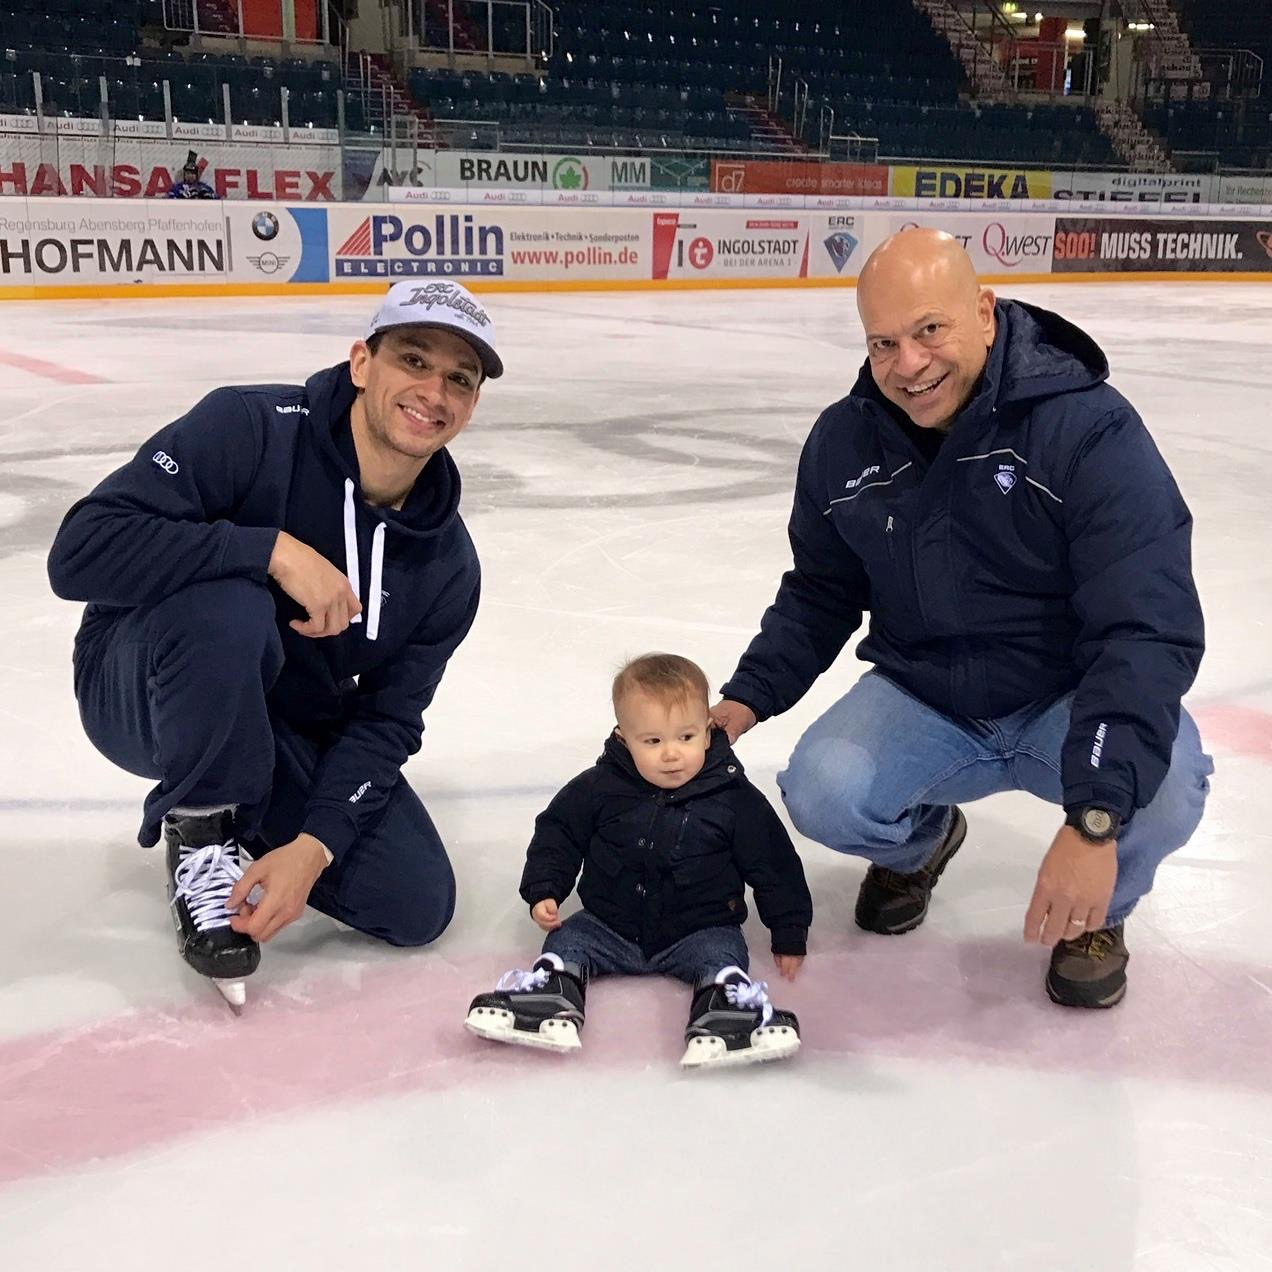 Copy of Brian, Lincoln, Frank at family ice in Ingolstadt, Germany